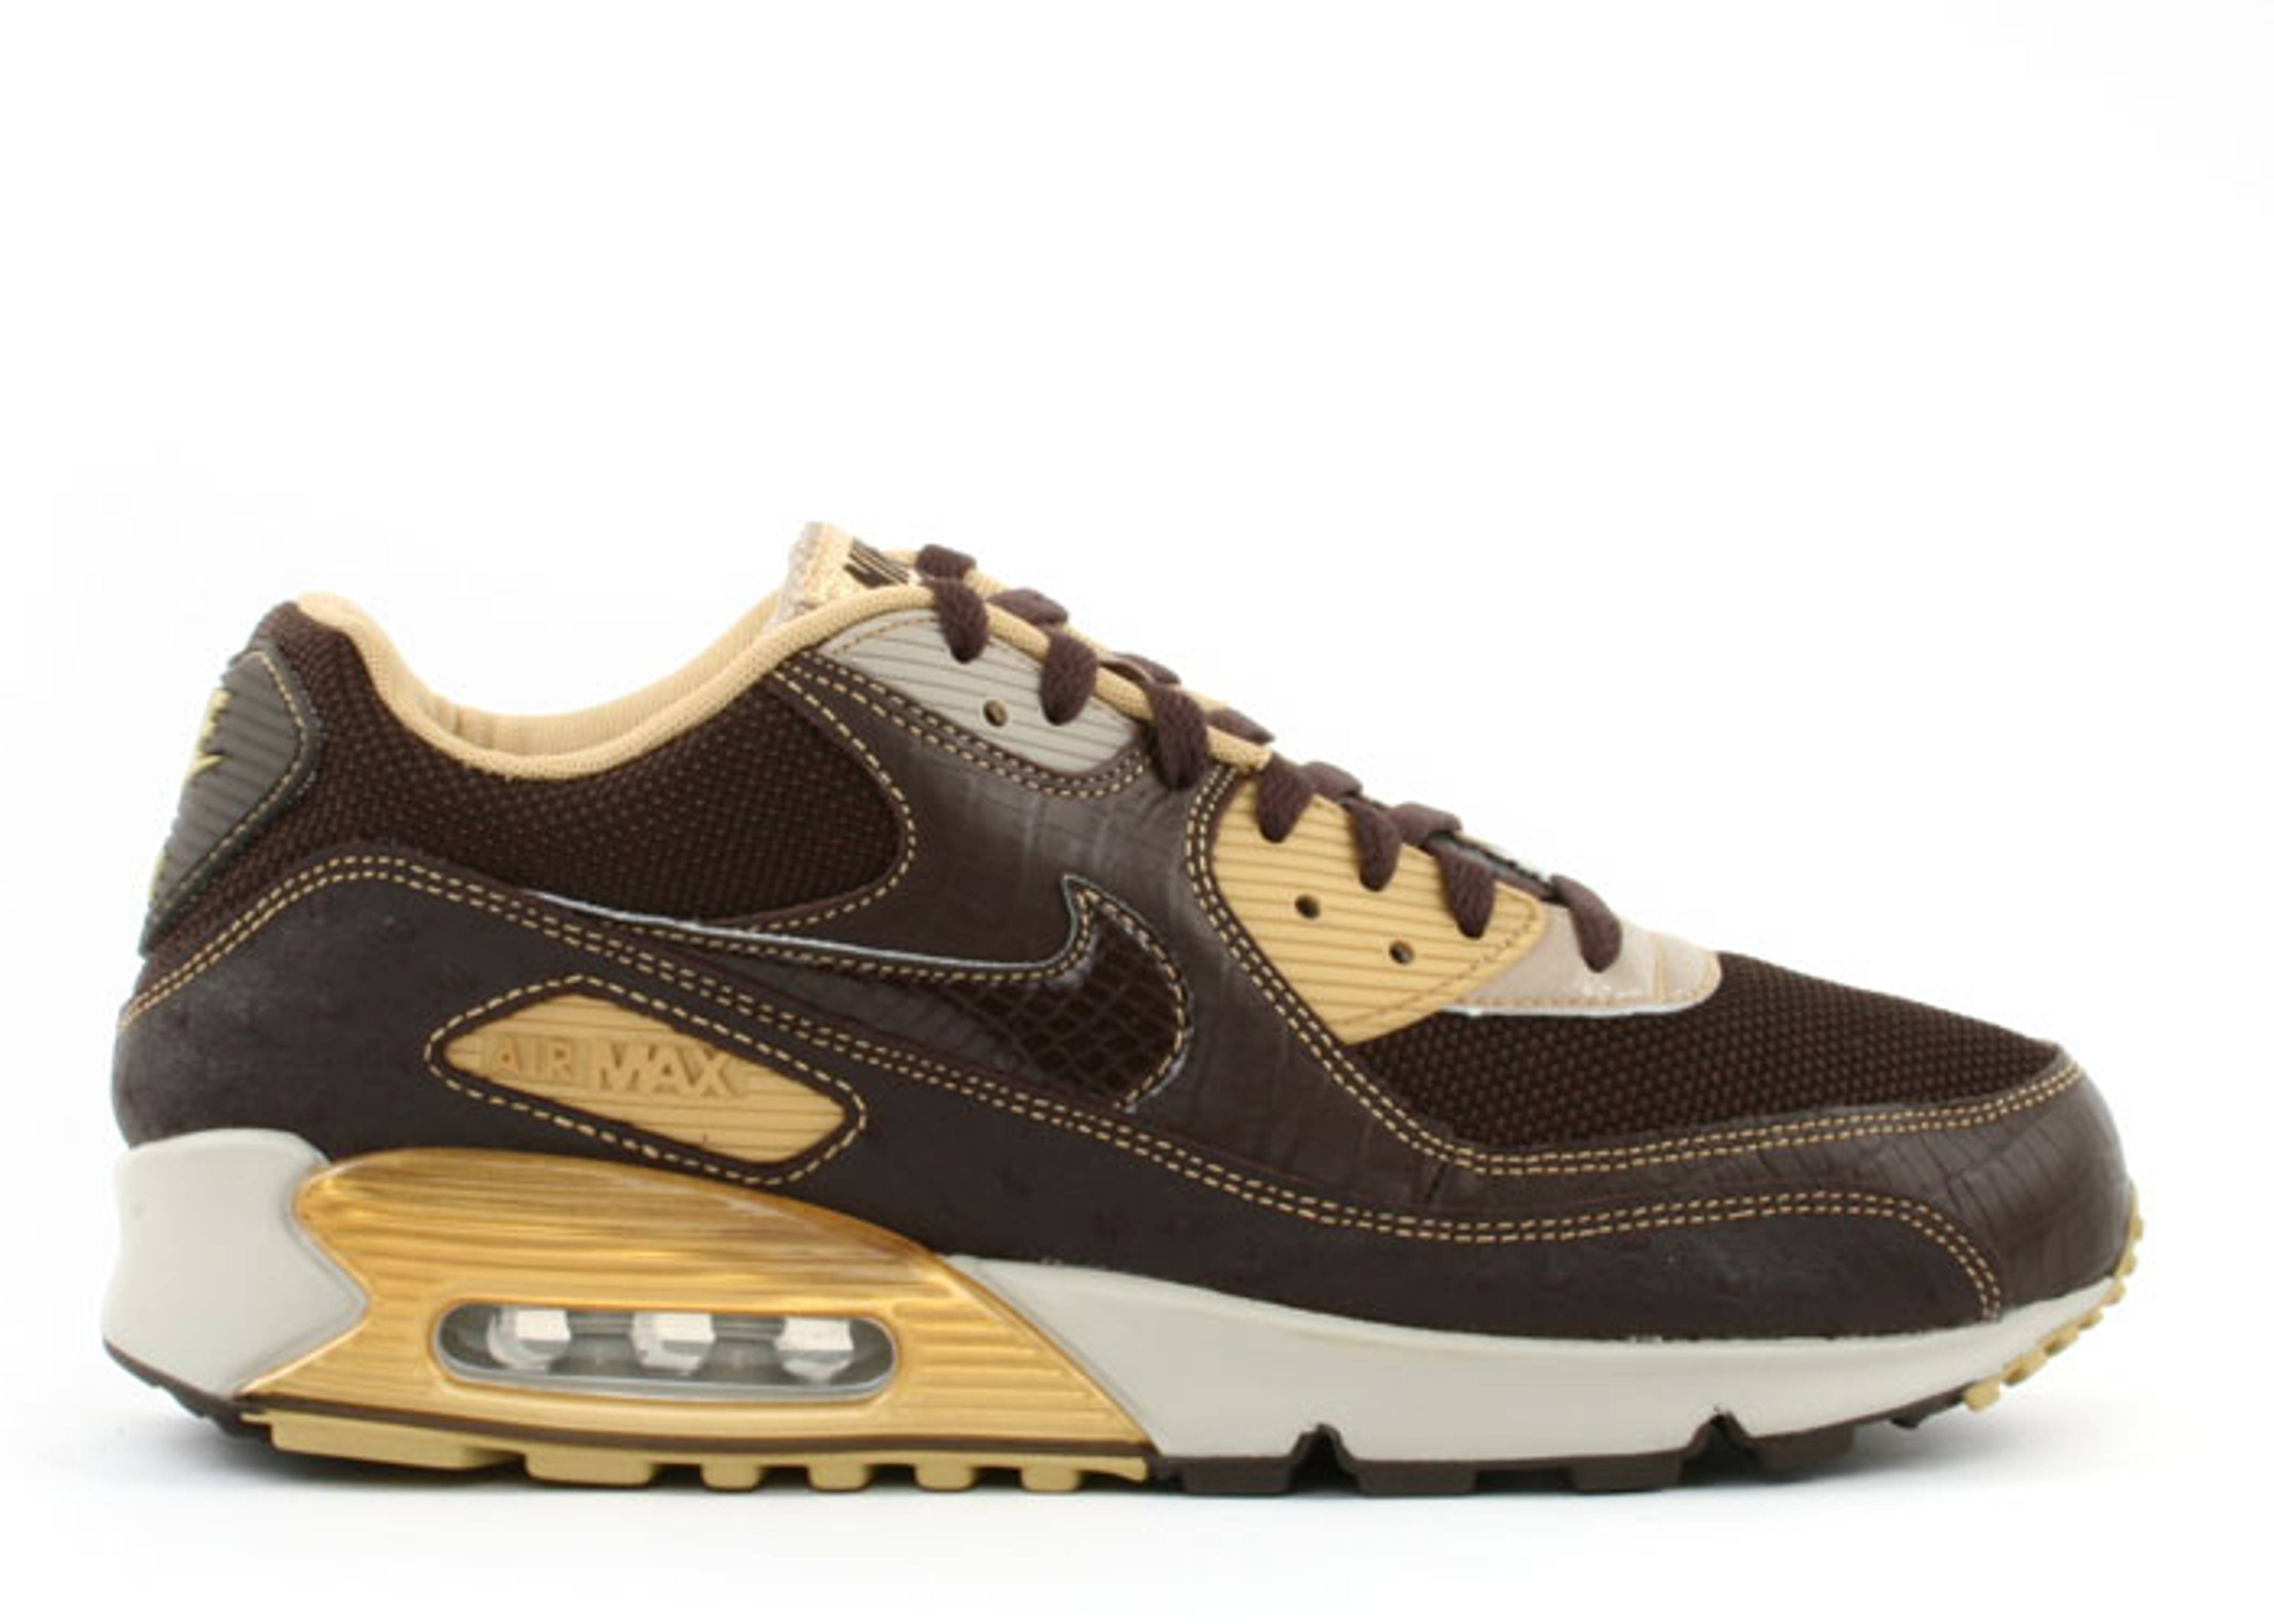 new arrival e3024 5989b nike. air max 90 deluxe